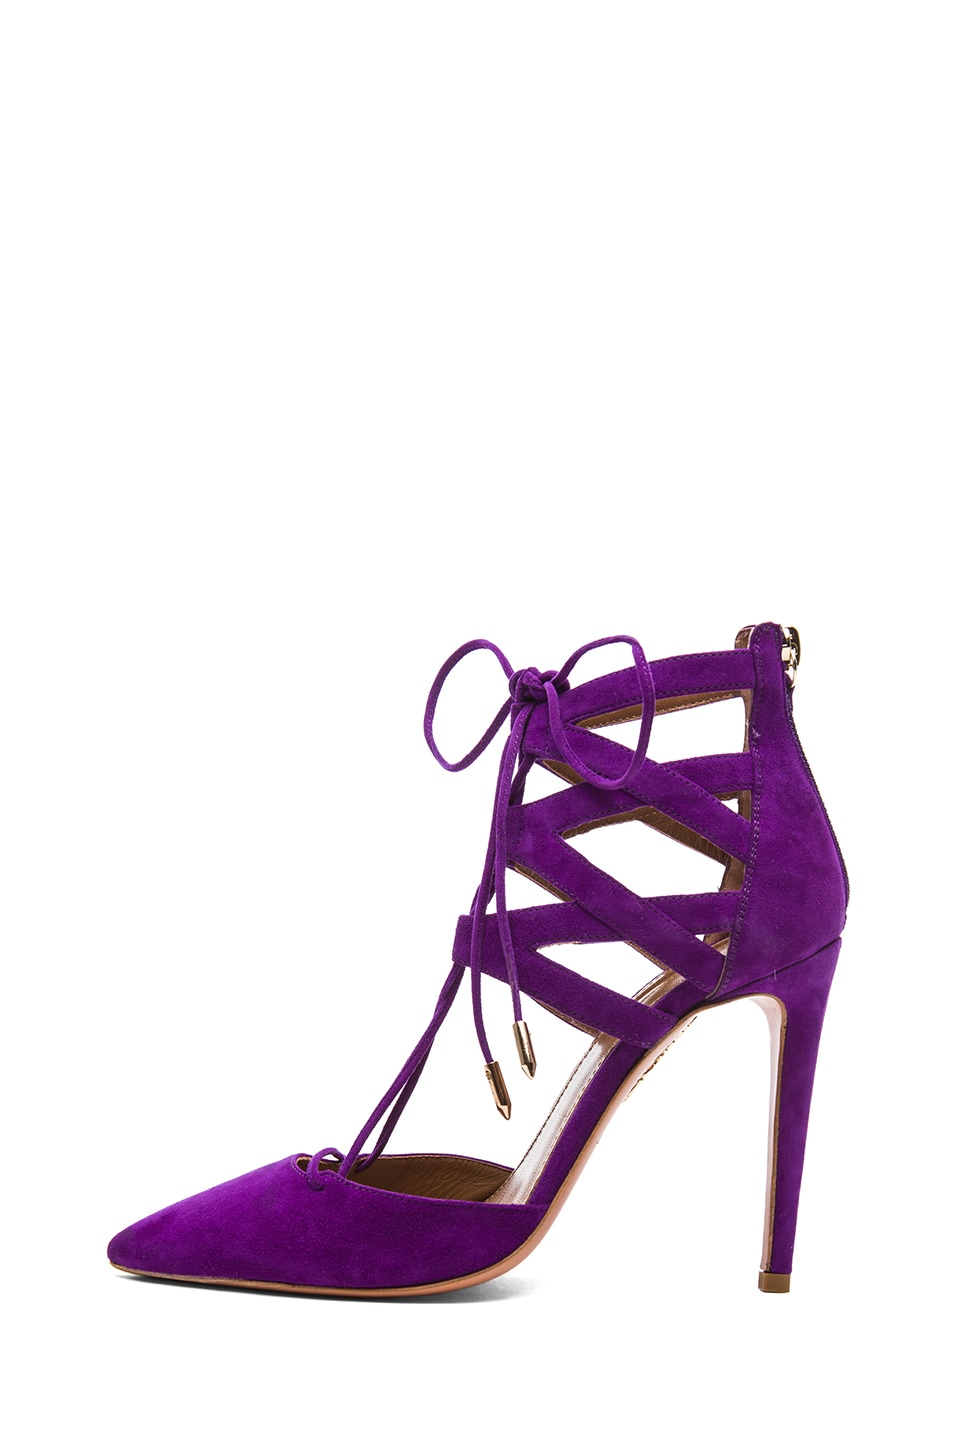 Image 2 of Aquazzura Belgravia Suede Lace Up Pumps in Violet